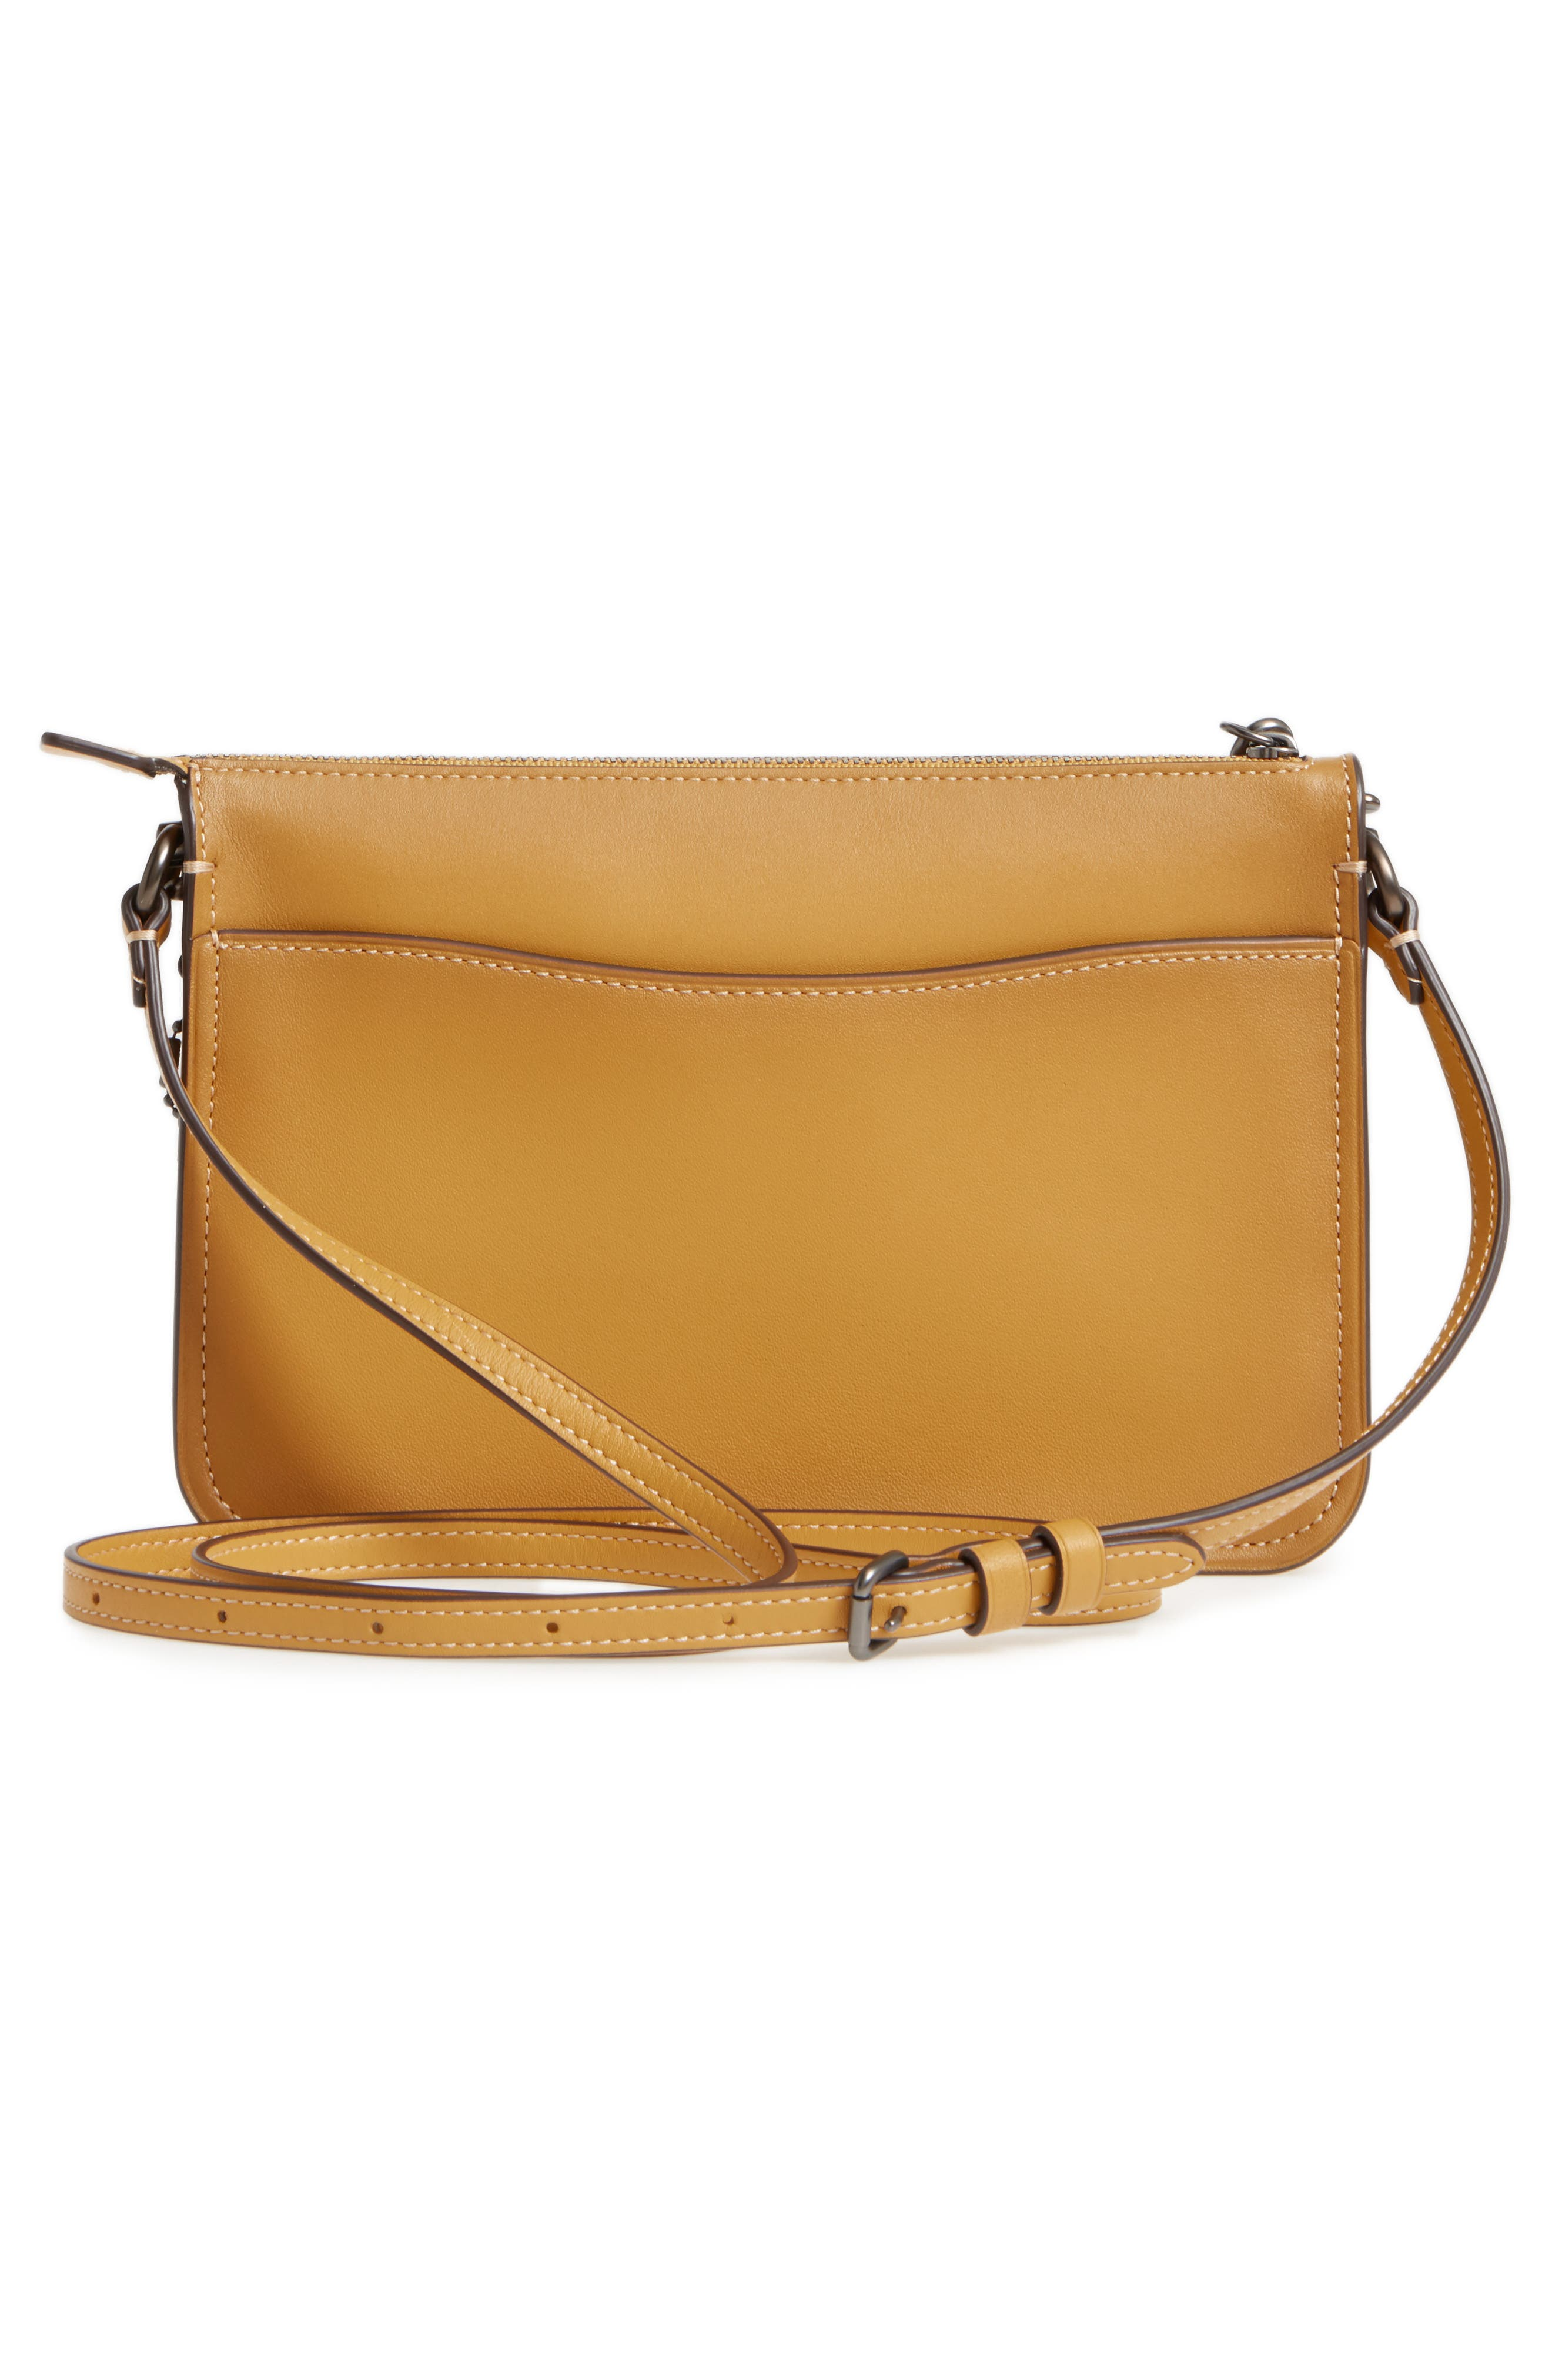 Soho Leather Crossbody Bag,                             Alternate thumbnail 3, color,                             Flax